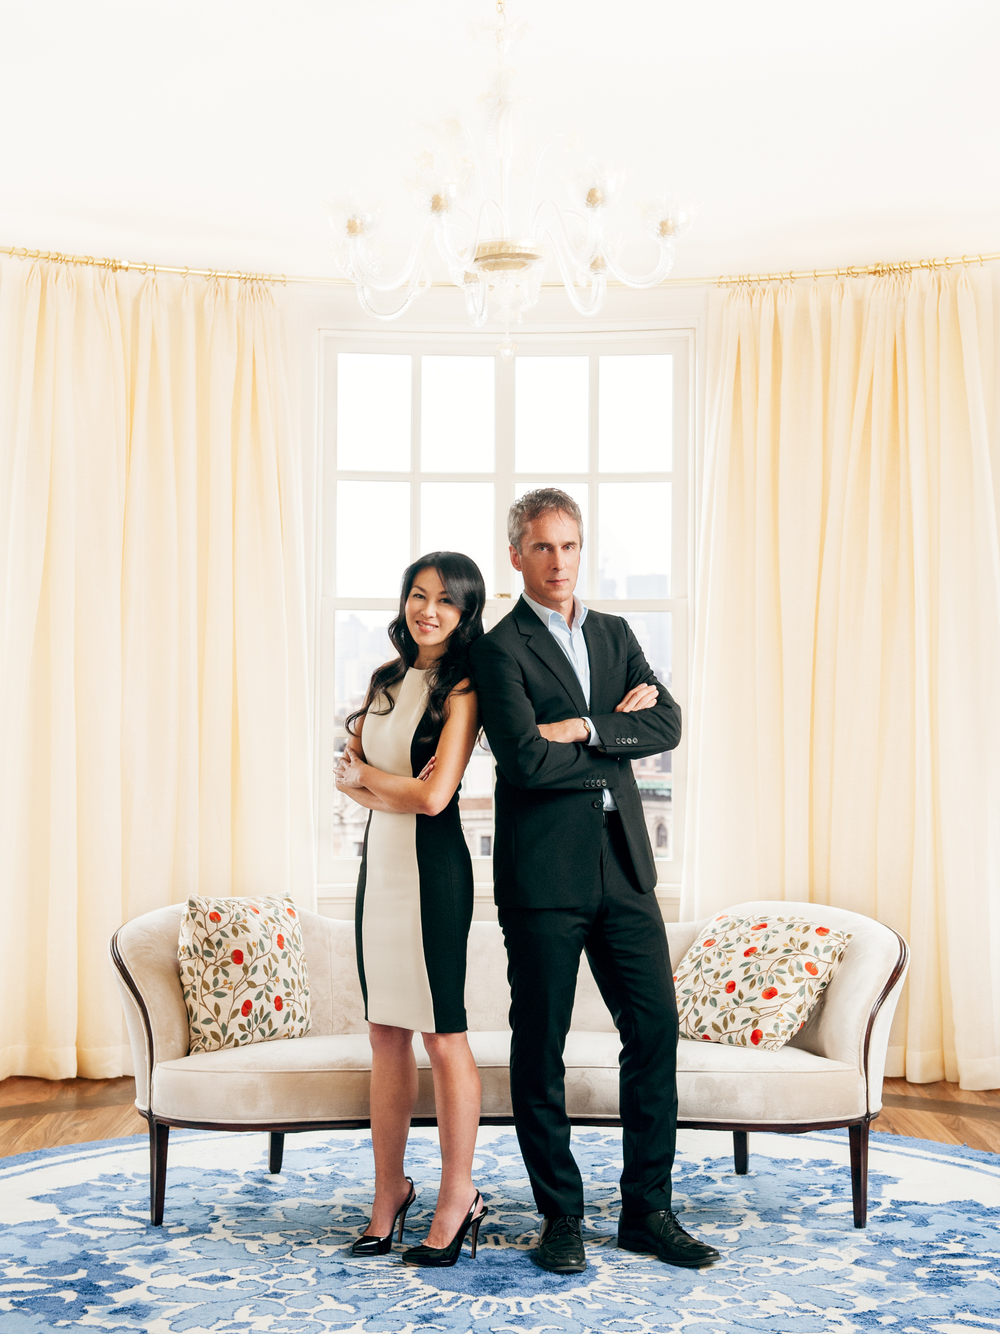 Amy Chua & Jed Rubenfeld, Authors of  The Triple Package  and  Battle Hymn of the Tiger Mother